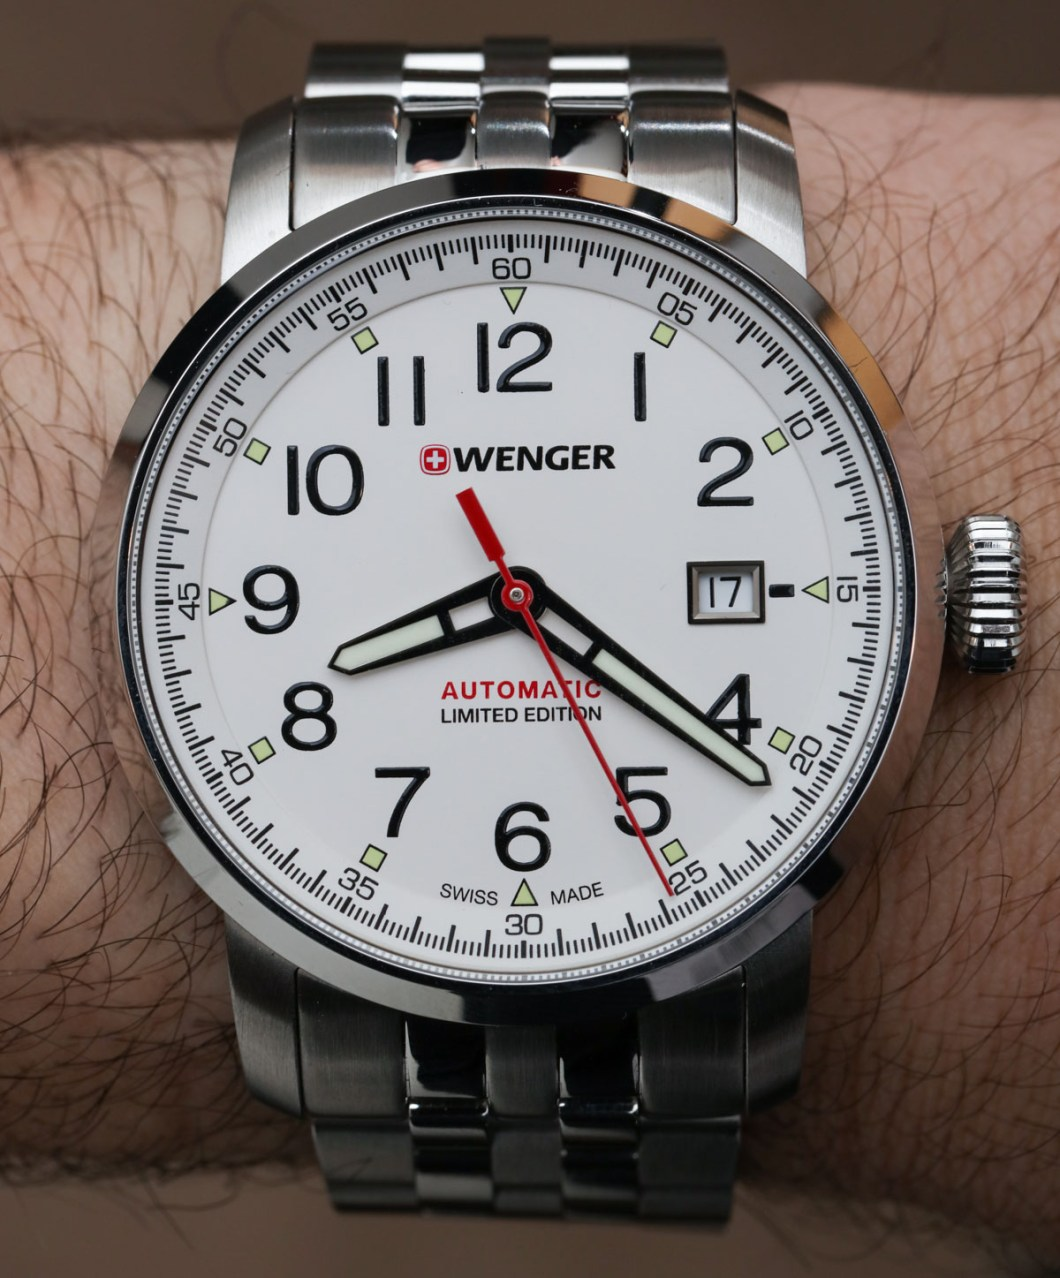 Wenger Attitude Heritage Automatique Watch Hands On